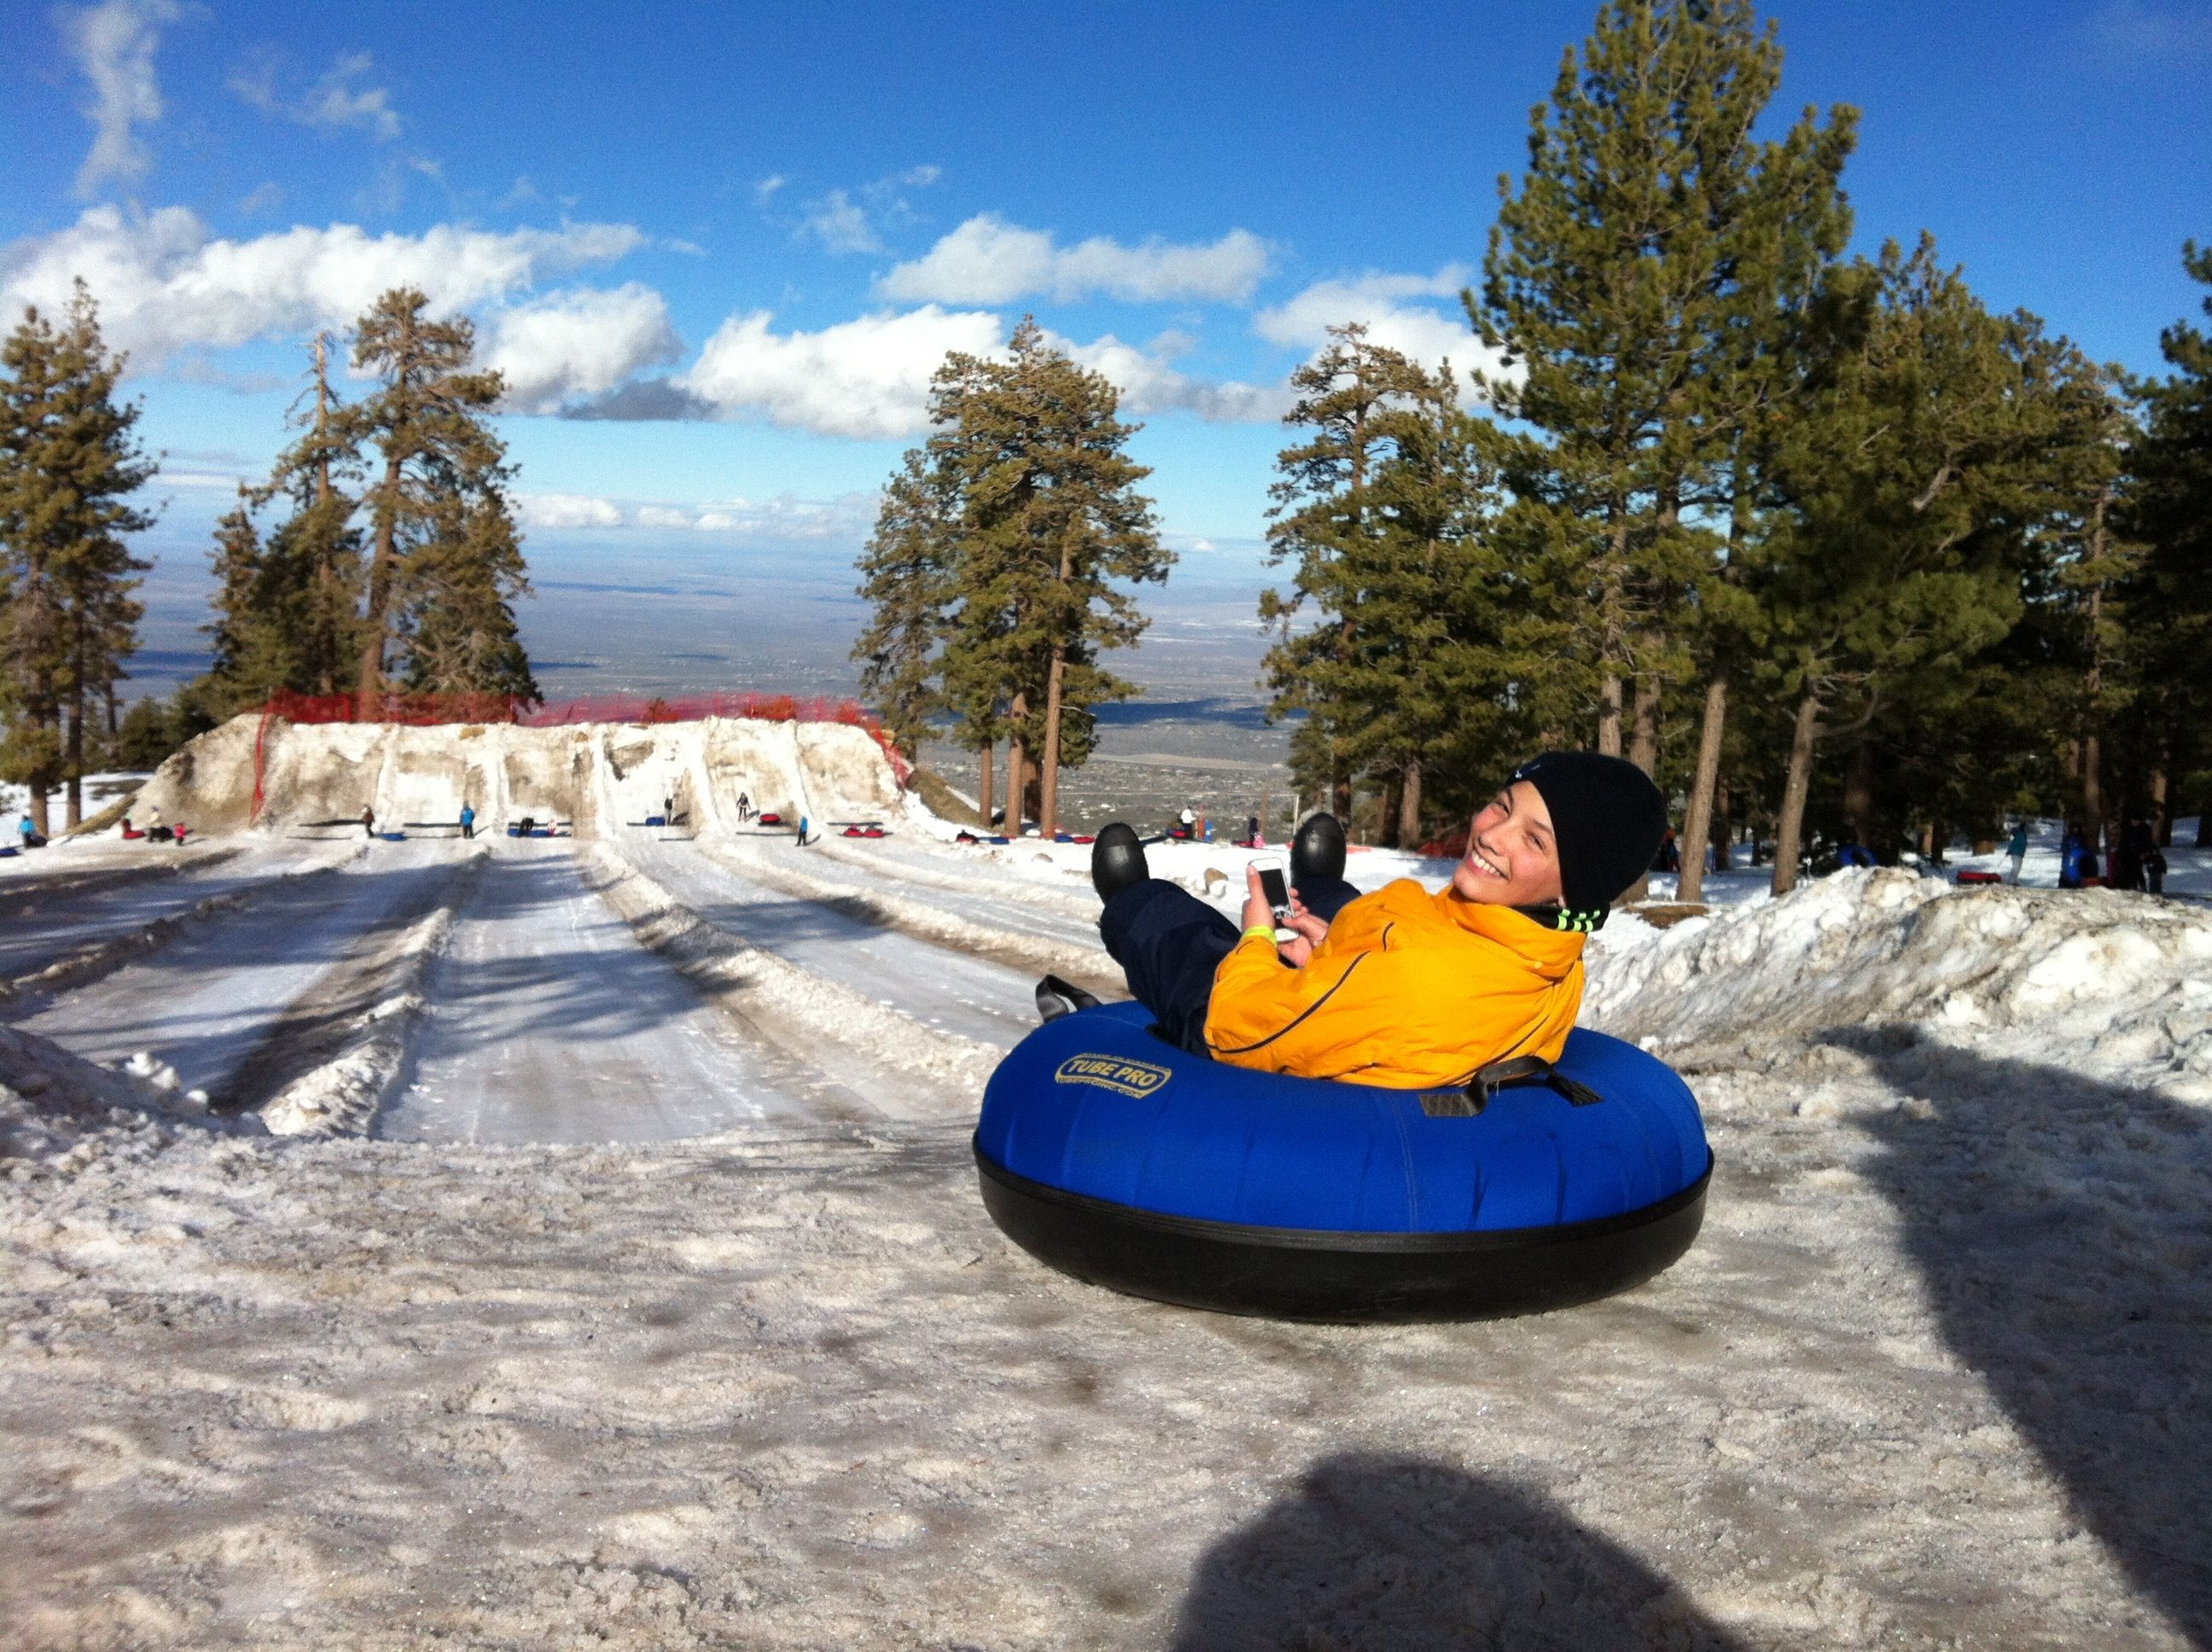 Snow Sledding Or Tubing Spots Near Los Angeles For Socal Kids Mommy Poppins Things To Do With Kids In 2020 Snow Adventure Snow Sled Baby In Snow